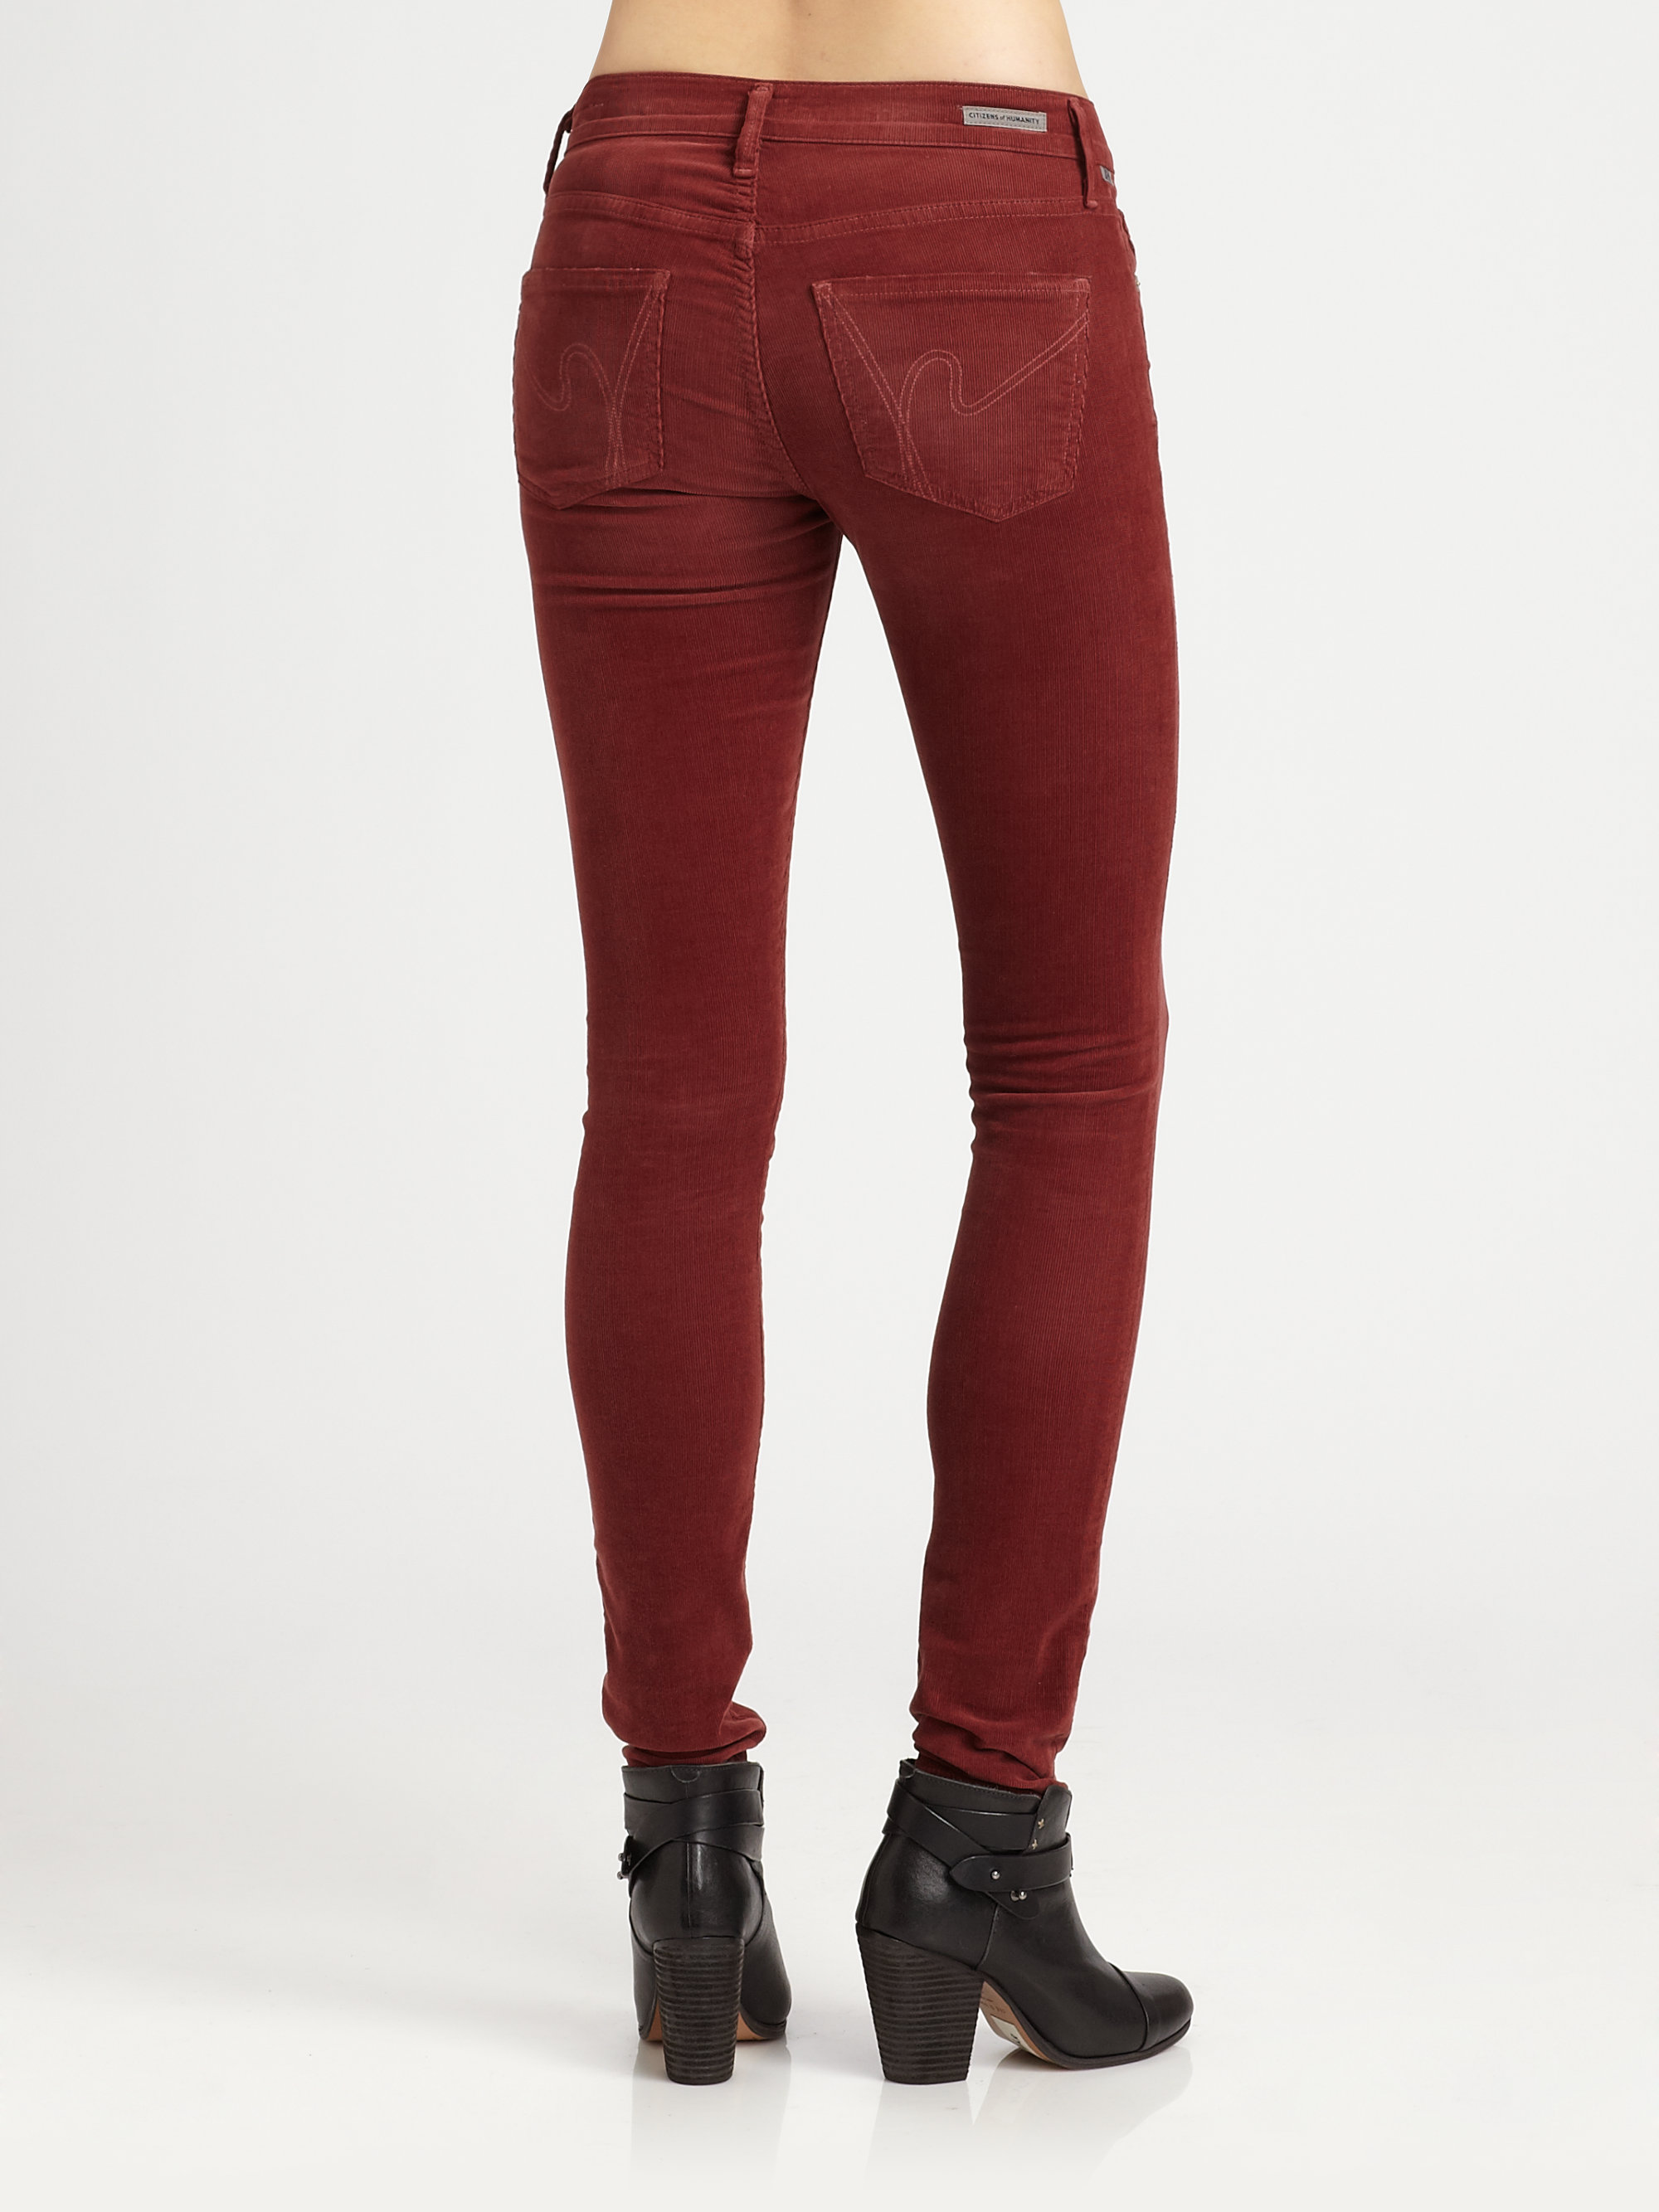 Citizens of humanity Luxe Corduroy Skinny Jeans in Red | Lyst